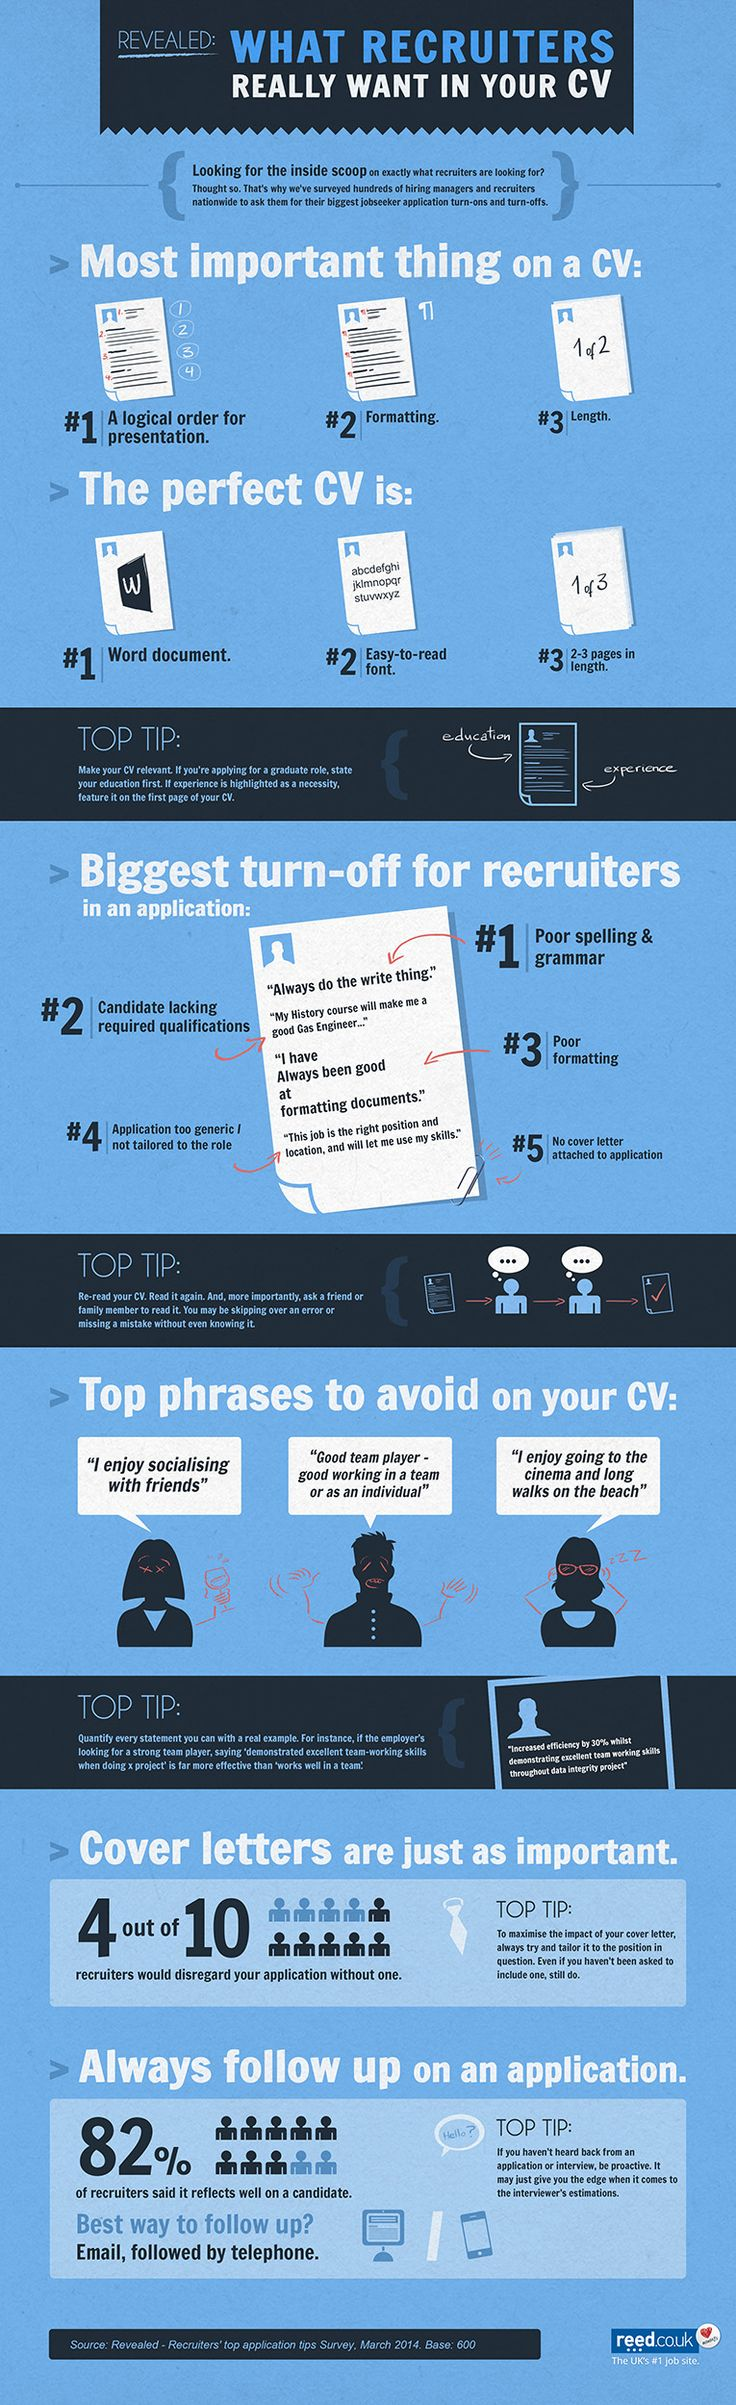 revealed what do recruiters really want to see on your cv infographic